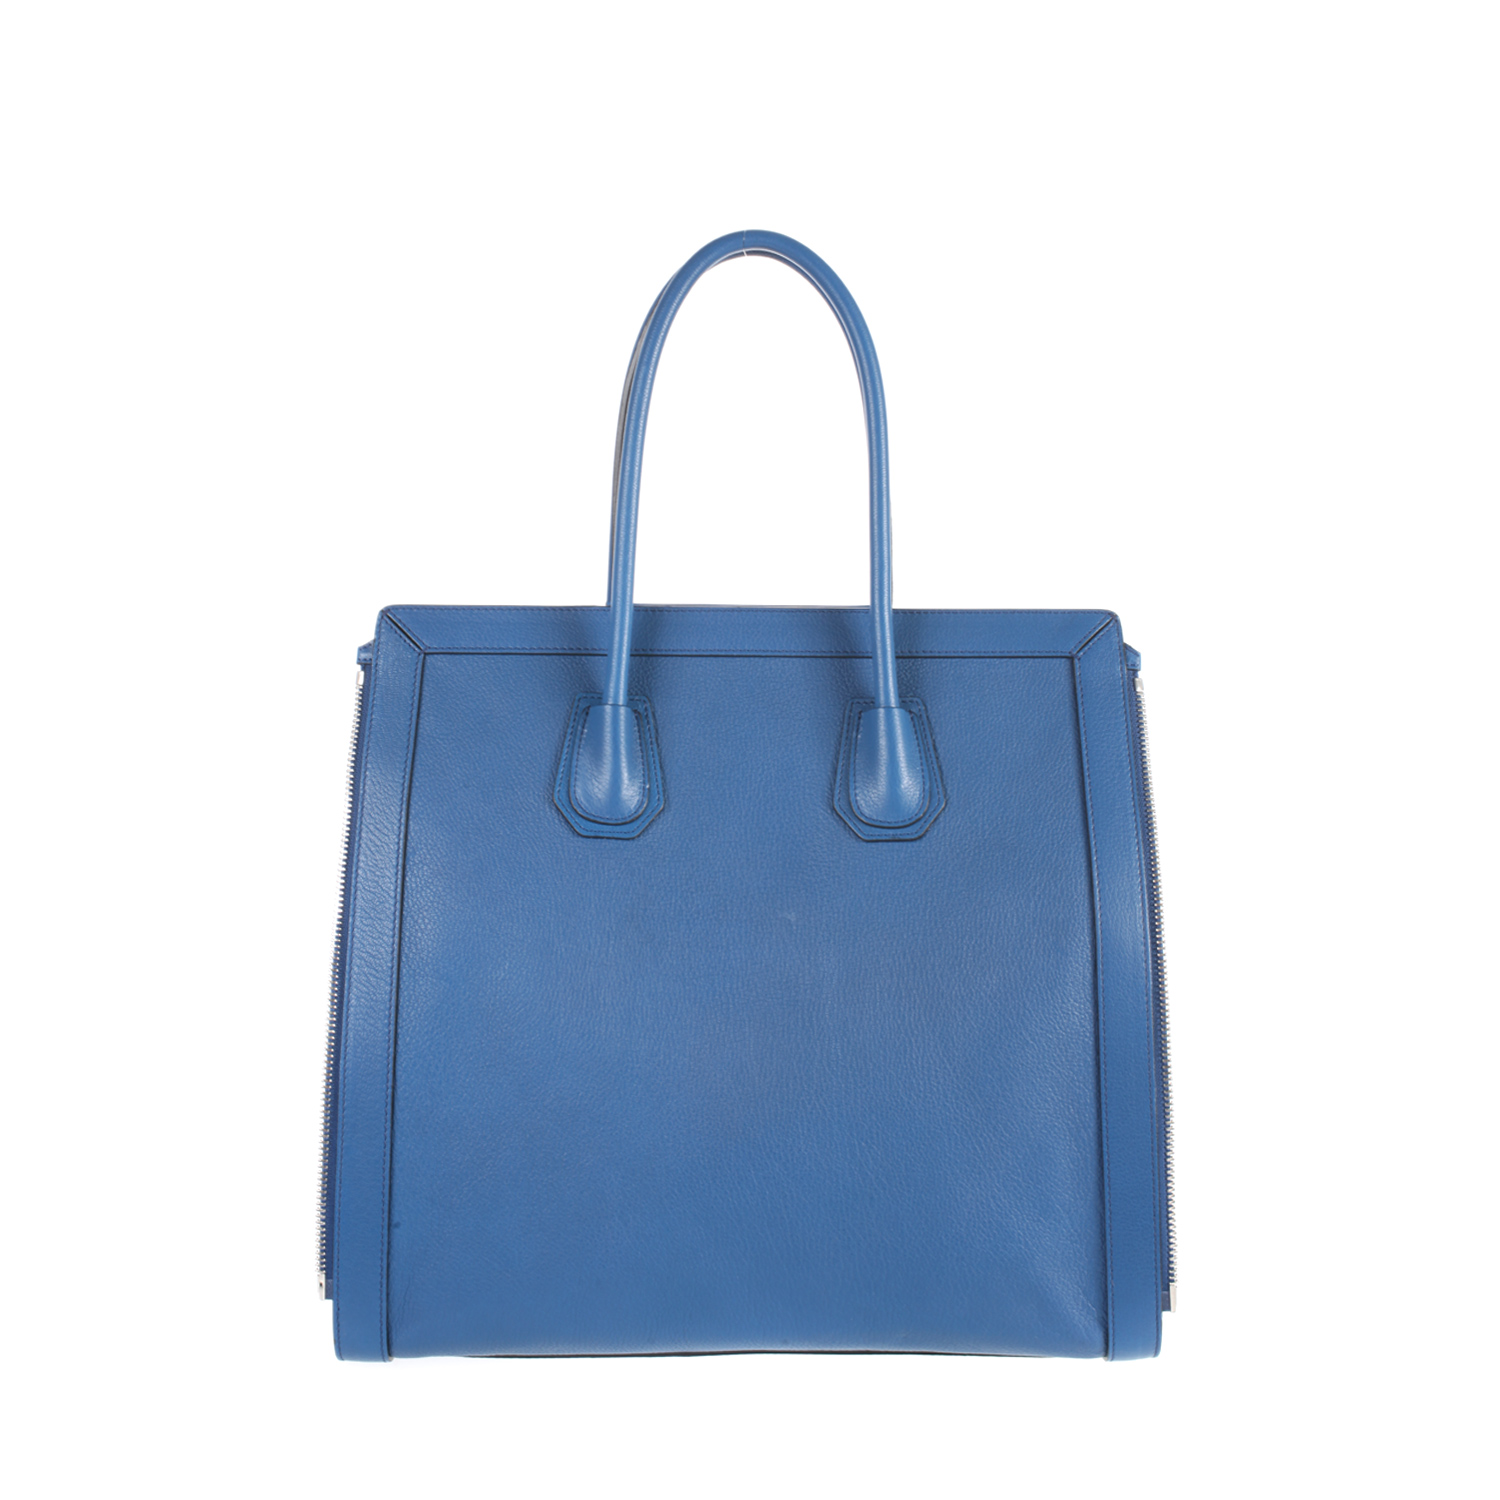 chleo handbags - givenchy zip-trimmed tote, discount givenchy outlet